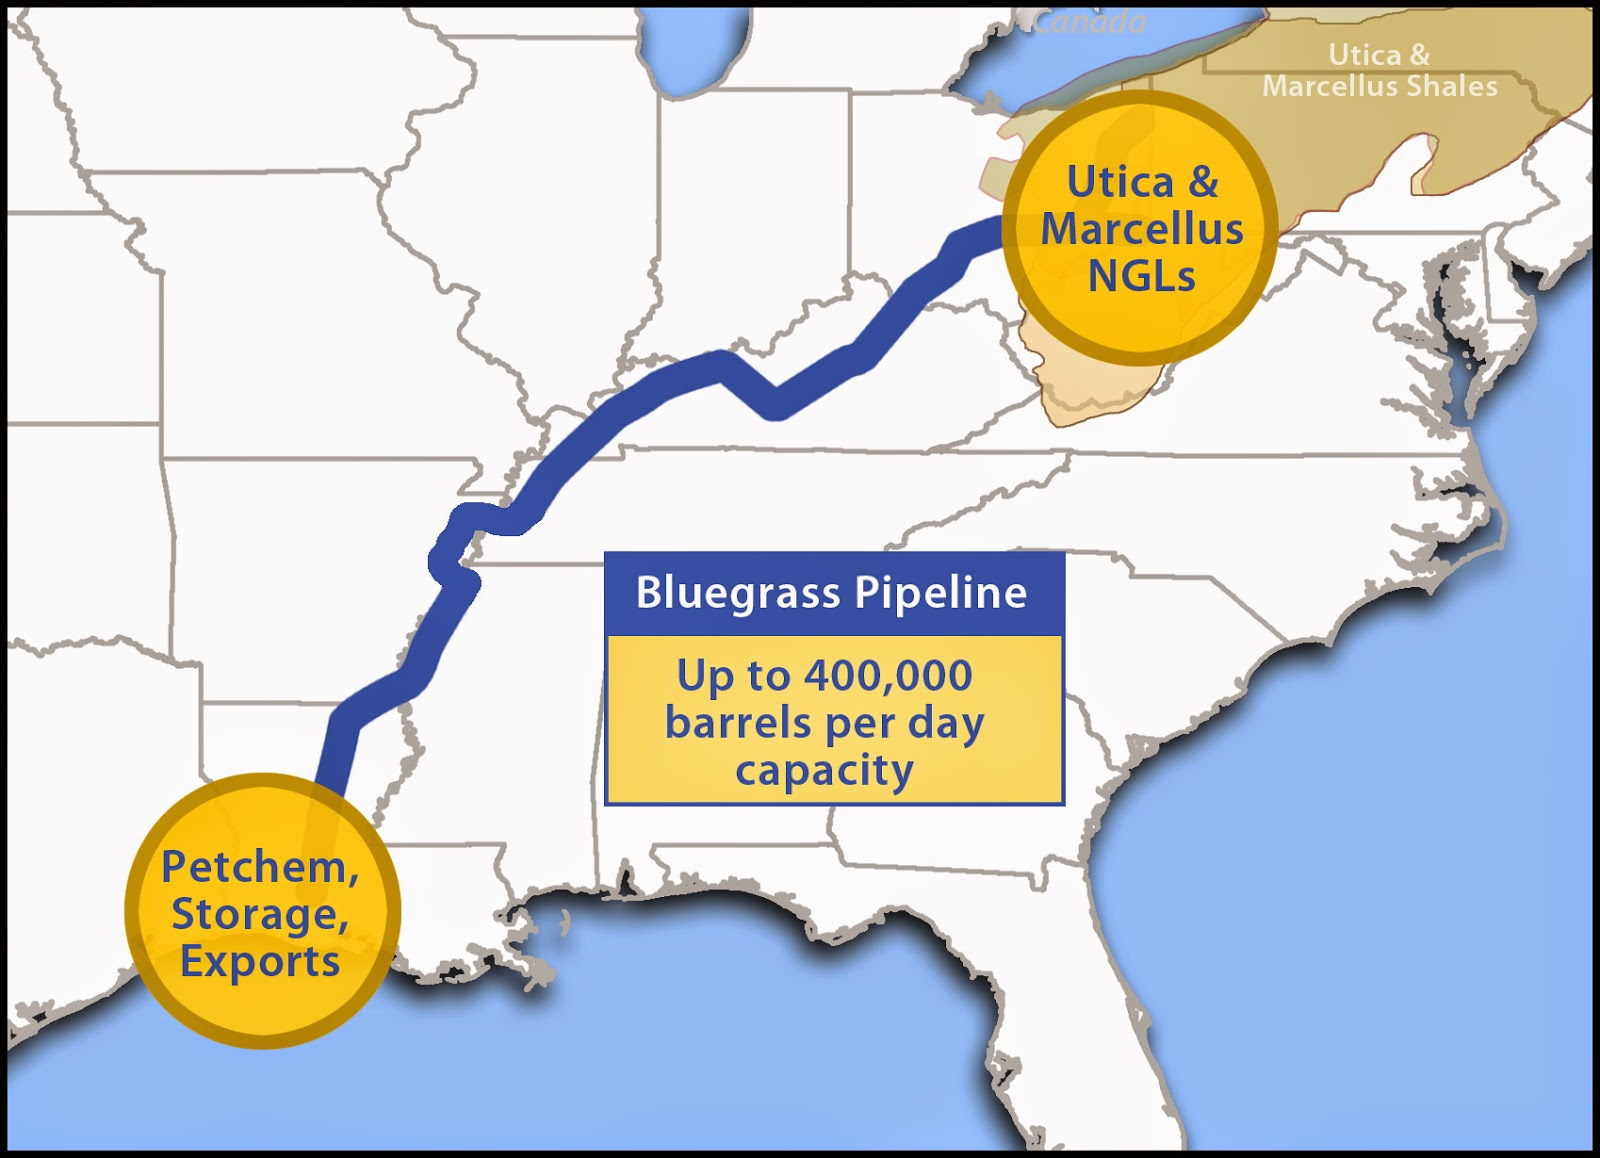 so we send natural gas from texas up through iowa and illinois to eastern states we build nuclear plants in illinois and wheel the electricity eastward